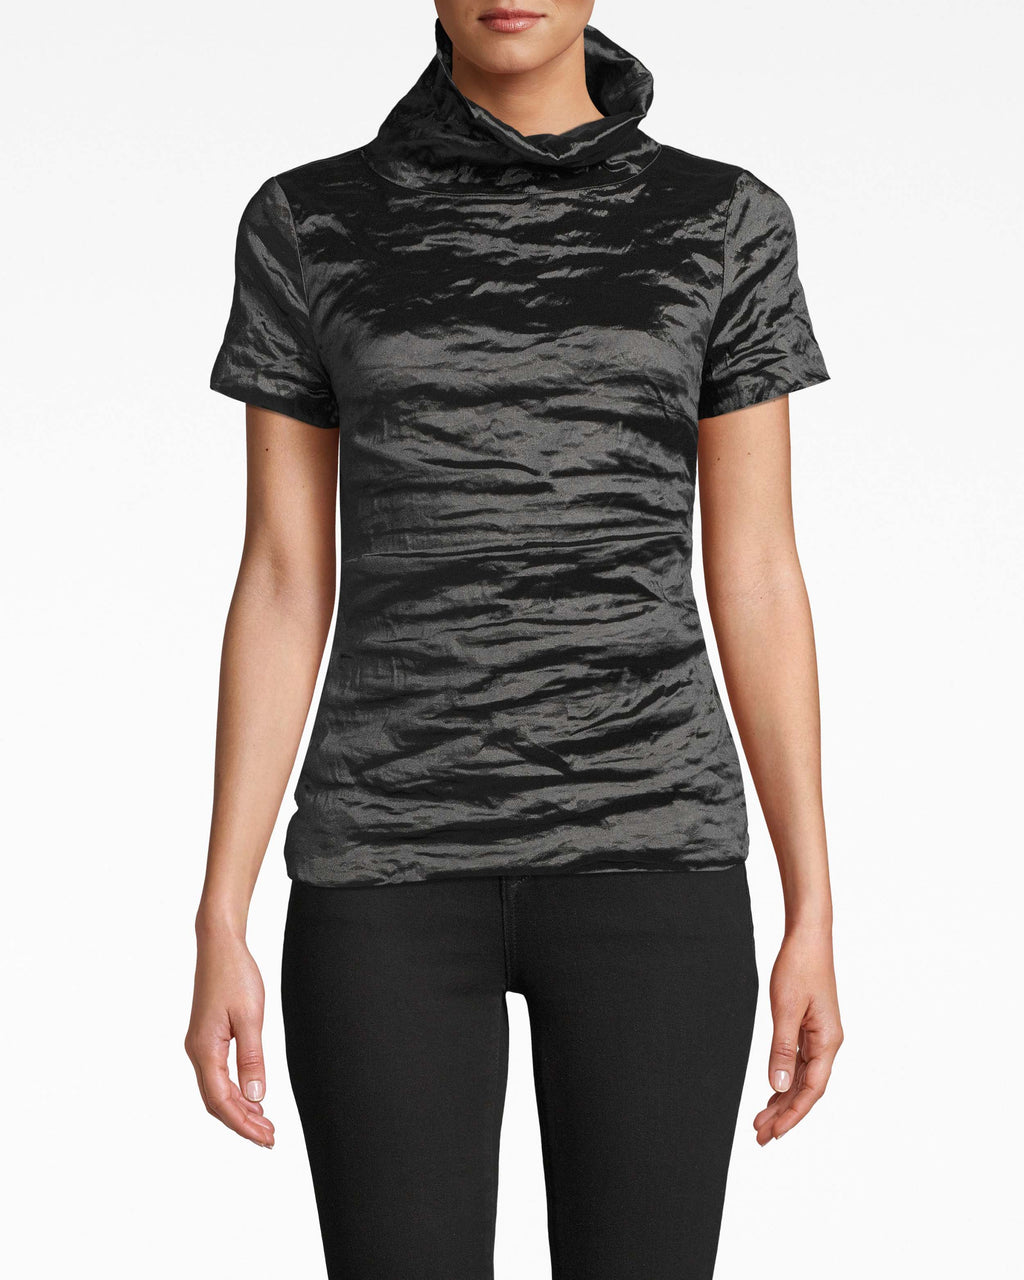 BK20043 - HIGH NECK TOP - tops - shirts - An unexpected high neck takes the lead on this textured Techno Metal top. Pair it with dark denim or dress pants. Exposed back zipper extends to the collar.